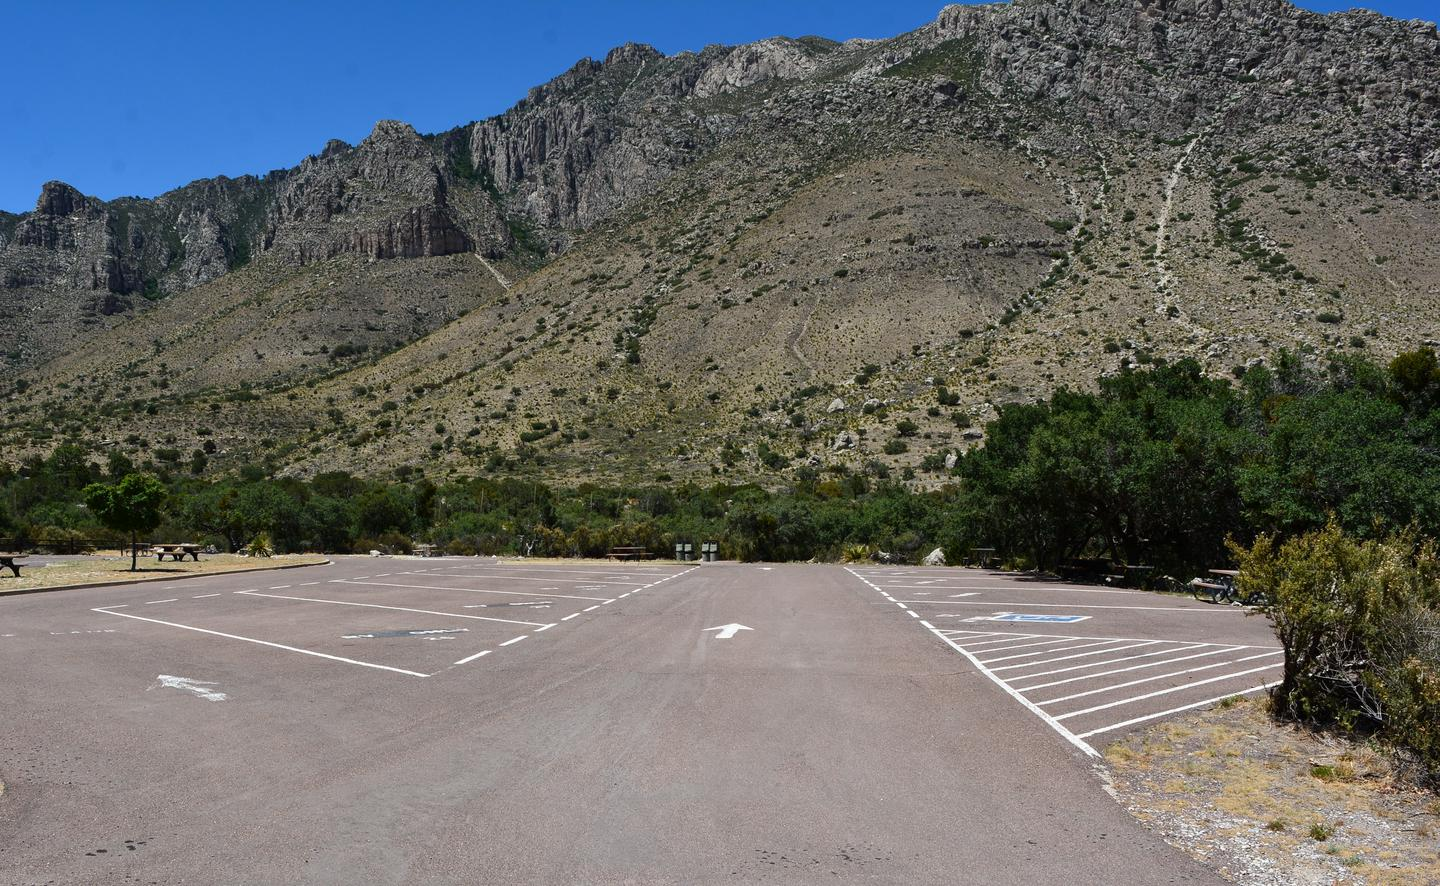 A view of RV campground parking area with sites 21-30 shown.  Site 23 is located along the right side of travel lane.  Mountain views in the background.A view of RV campground parking area with sites 21-30 shown.  Site 23 is located along the right side of travel lane.